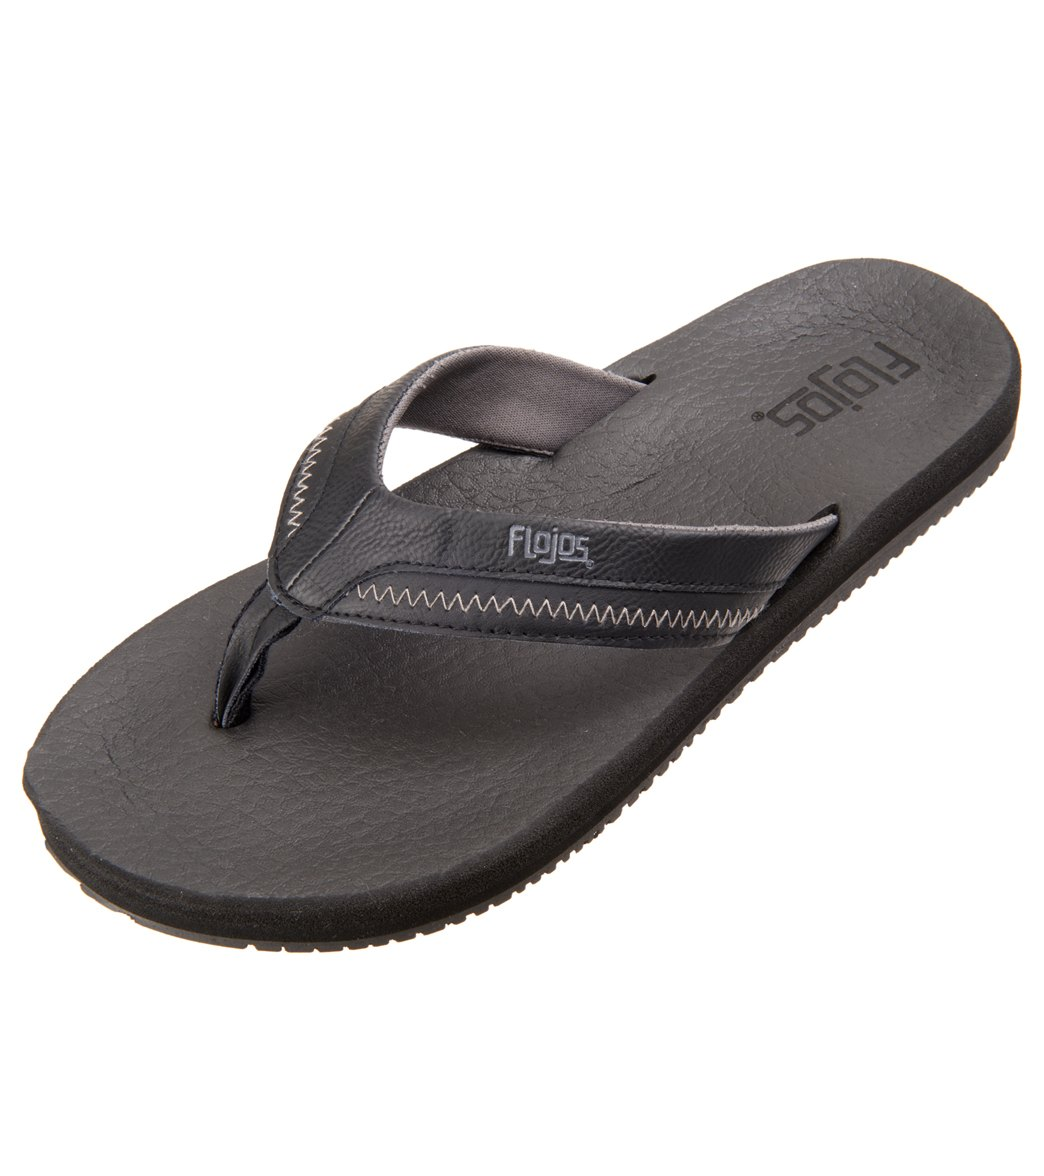 b19d8114771f Flojos Men s Mason Flip Flop at SwimOutlet.com